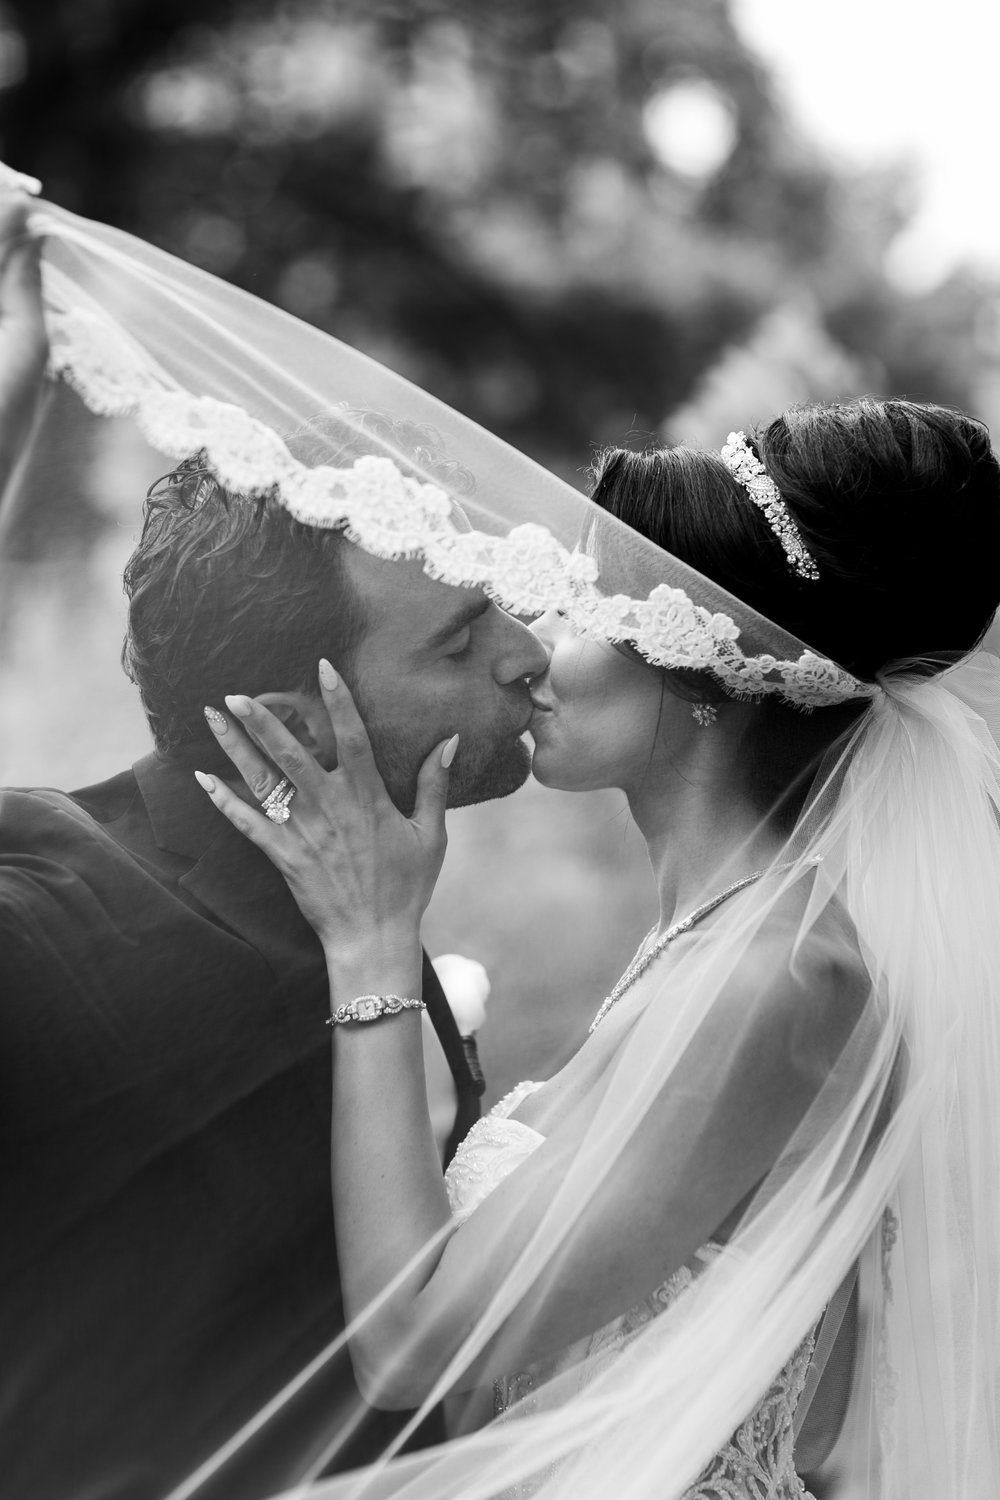 LisaDiederichPhotography_Jessica&Peter_Blog-202.jpg